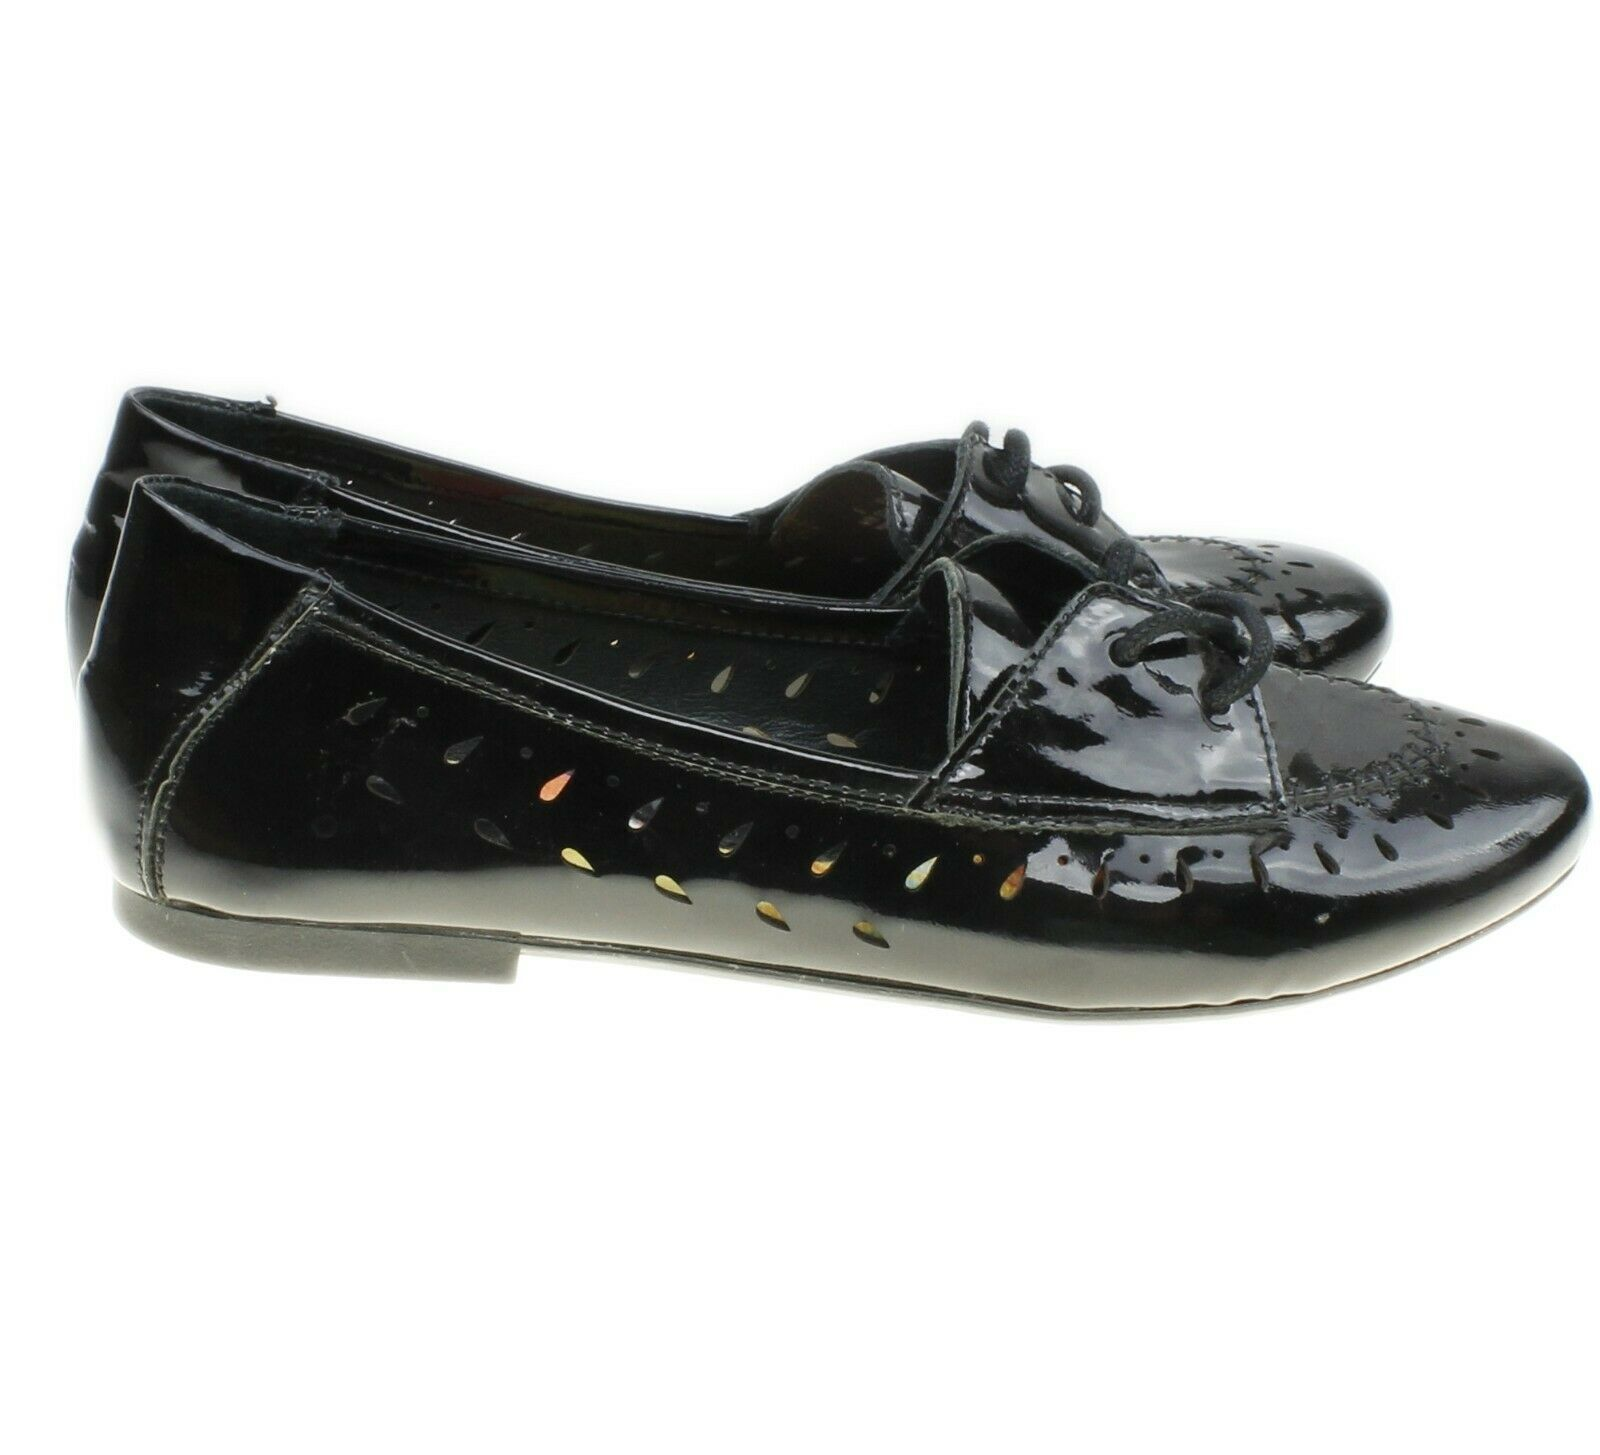 BORN Womens Black Patent Leather Perforated Lace-ups Flats Size 9